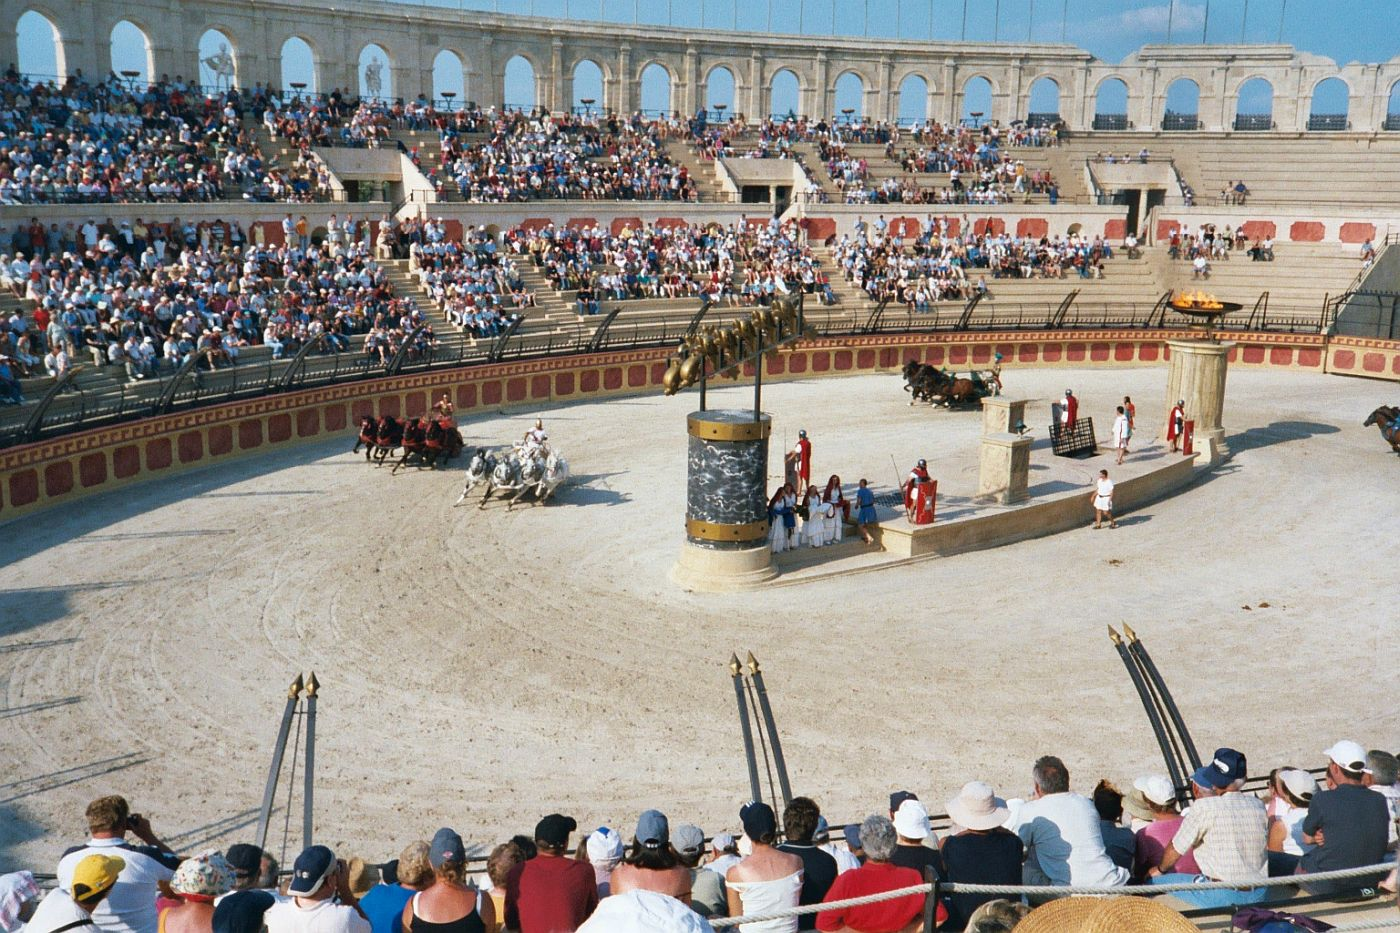 Contemporary reconstructions of the chariot race at the Puy du Fou theme park in Les Epesses (France) attract 1.5 million tourists annually